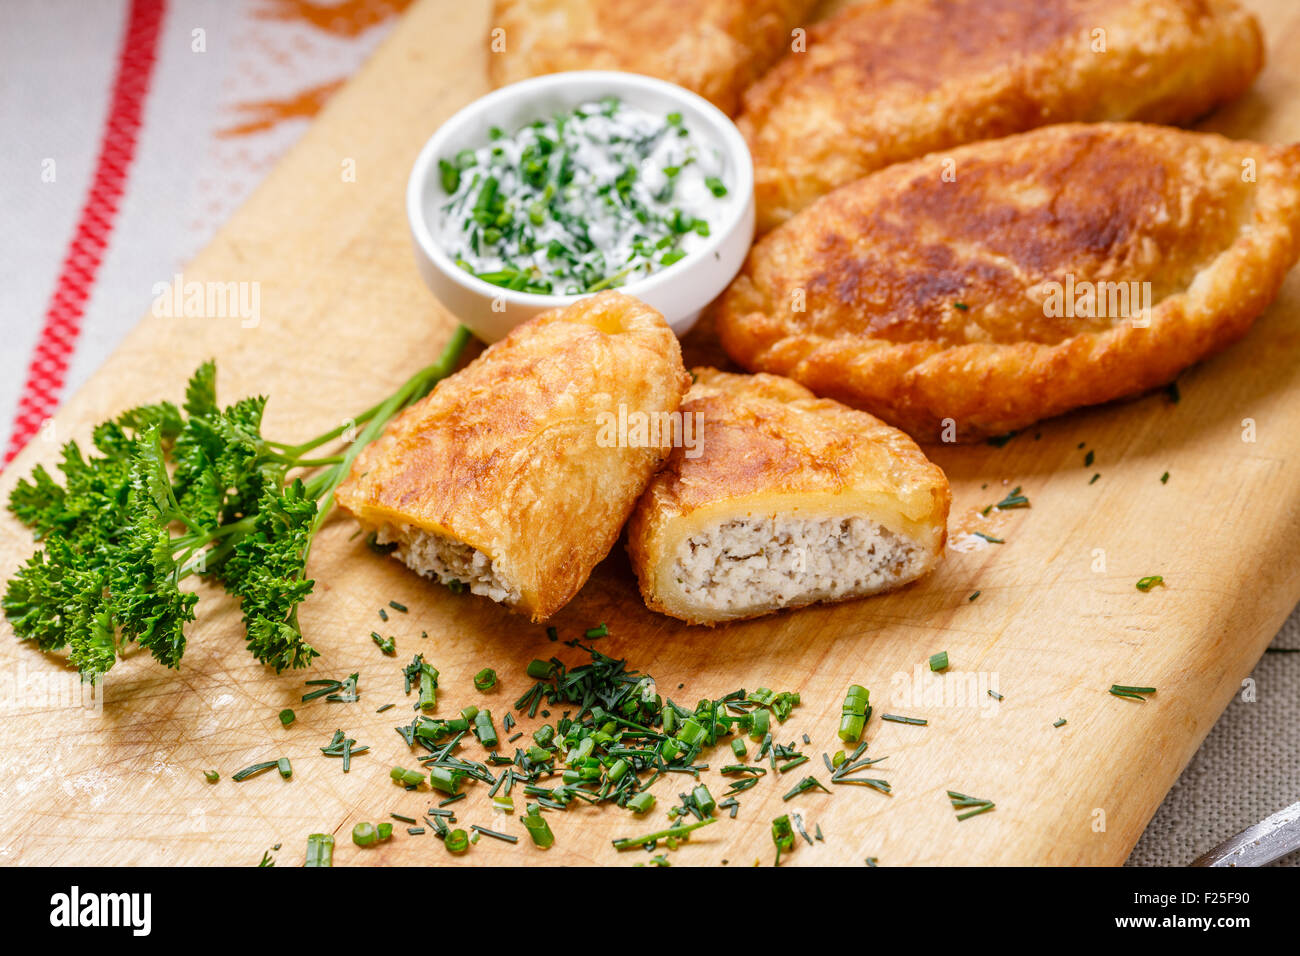 Colombian empanadas (snack sized savory patties) on wooden board. Latin cuisine Stock Photo